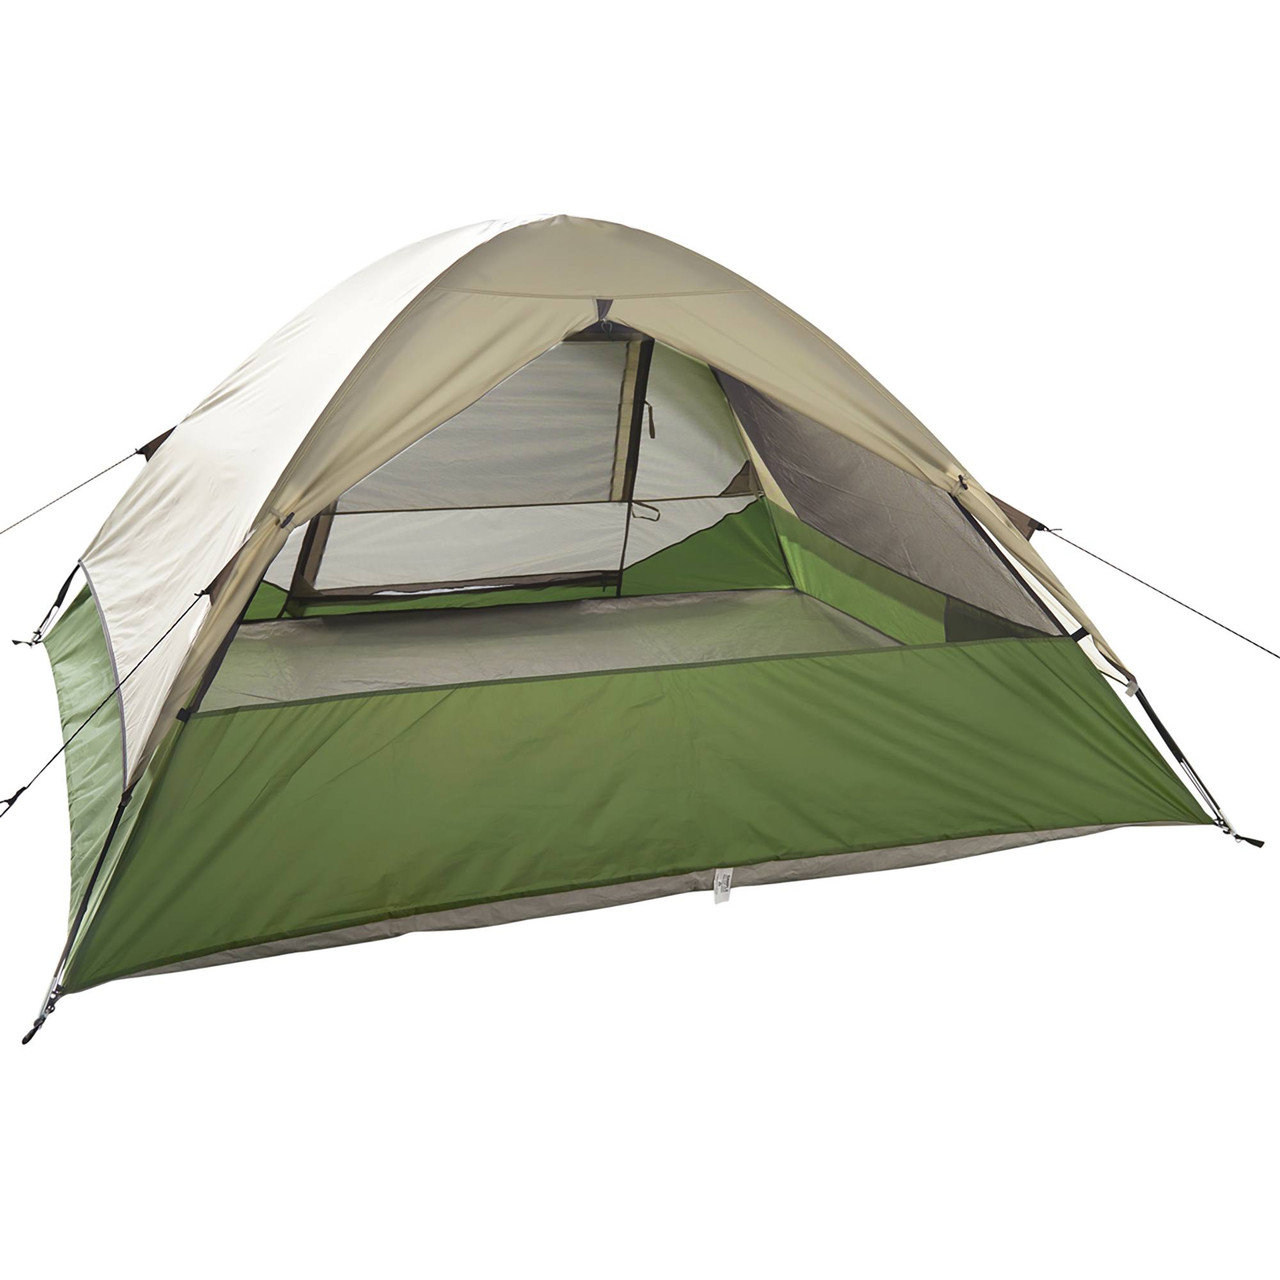 Wenzel Jack Pine 4 Person Dome Tent, green/white, rear view, with window opened